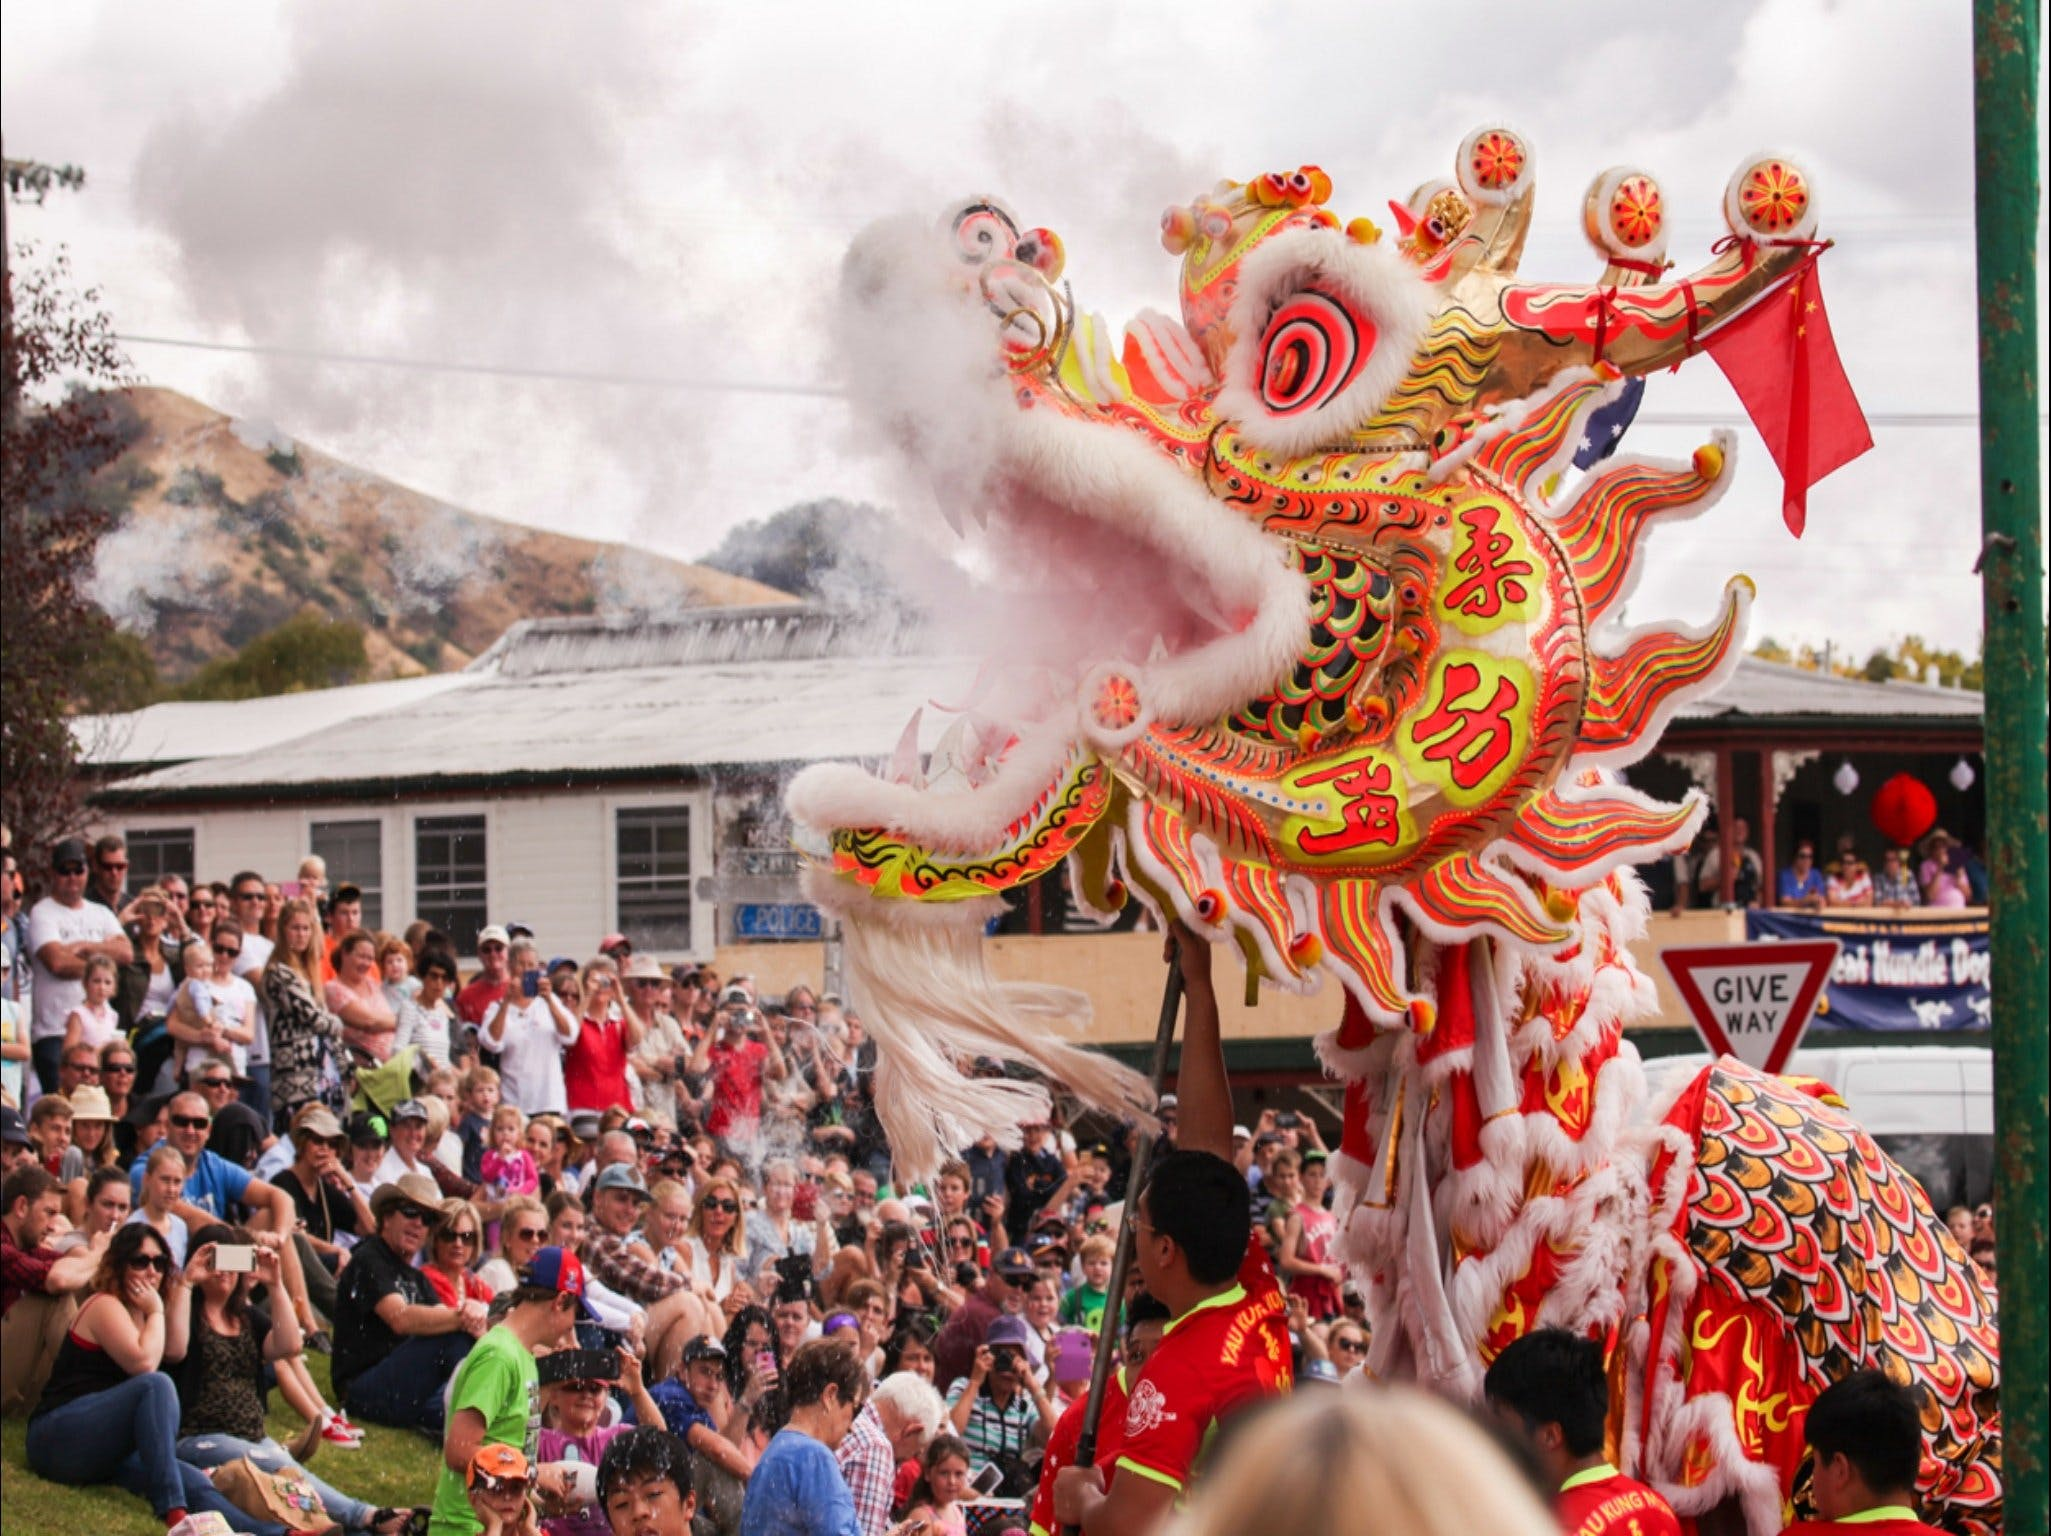 Nundle Go For Gold Chinese Easter Festival - Accommodation in Surfers Paradise